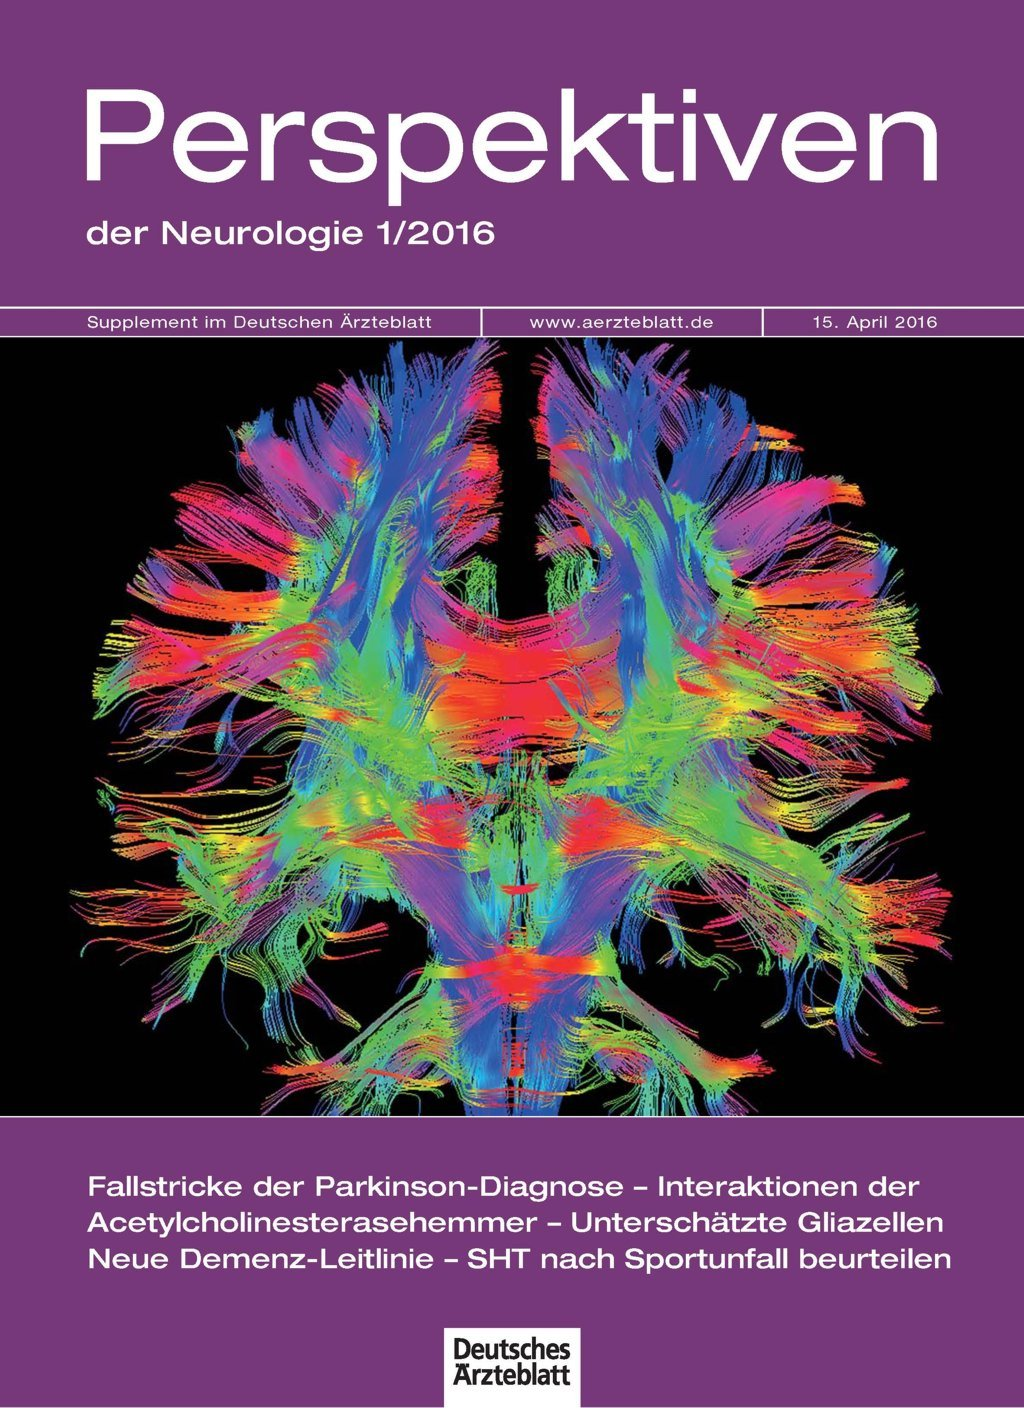 Dtsch Arztebl 2016; 113(15) Supplement: Perspektiven der Neurologie